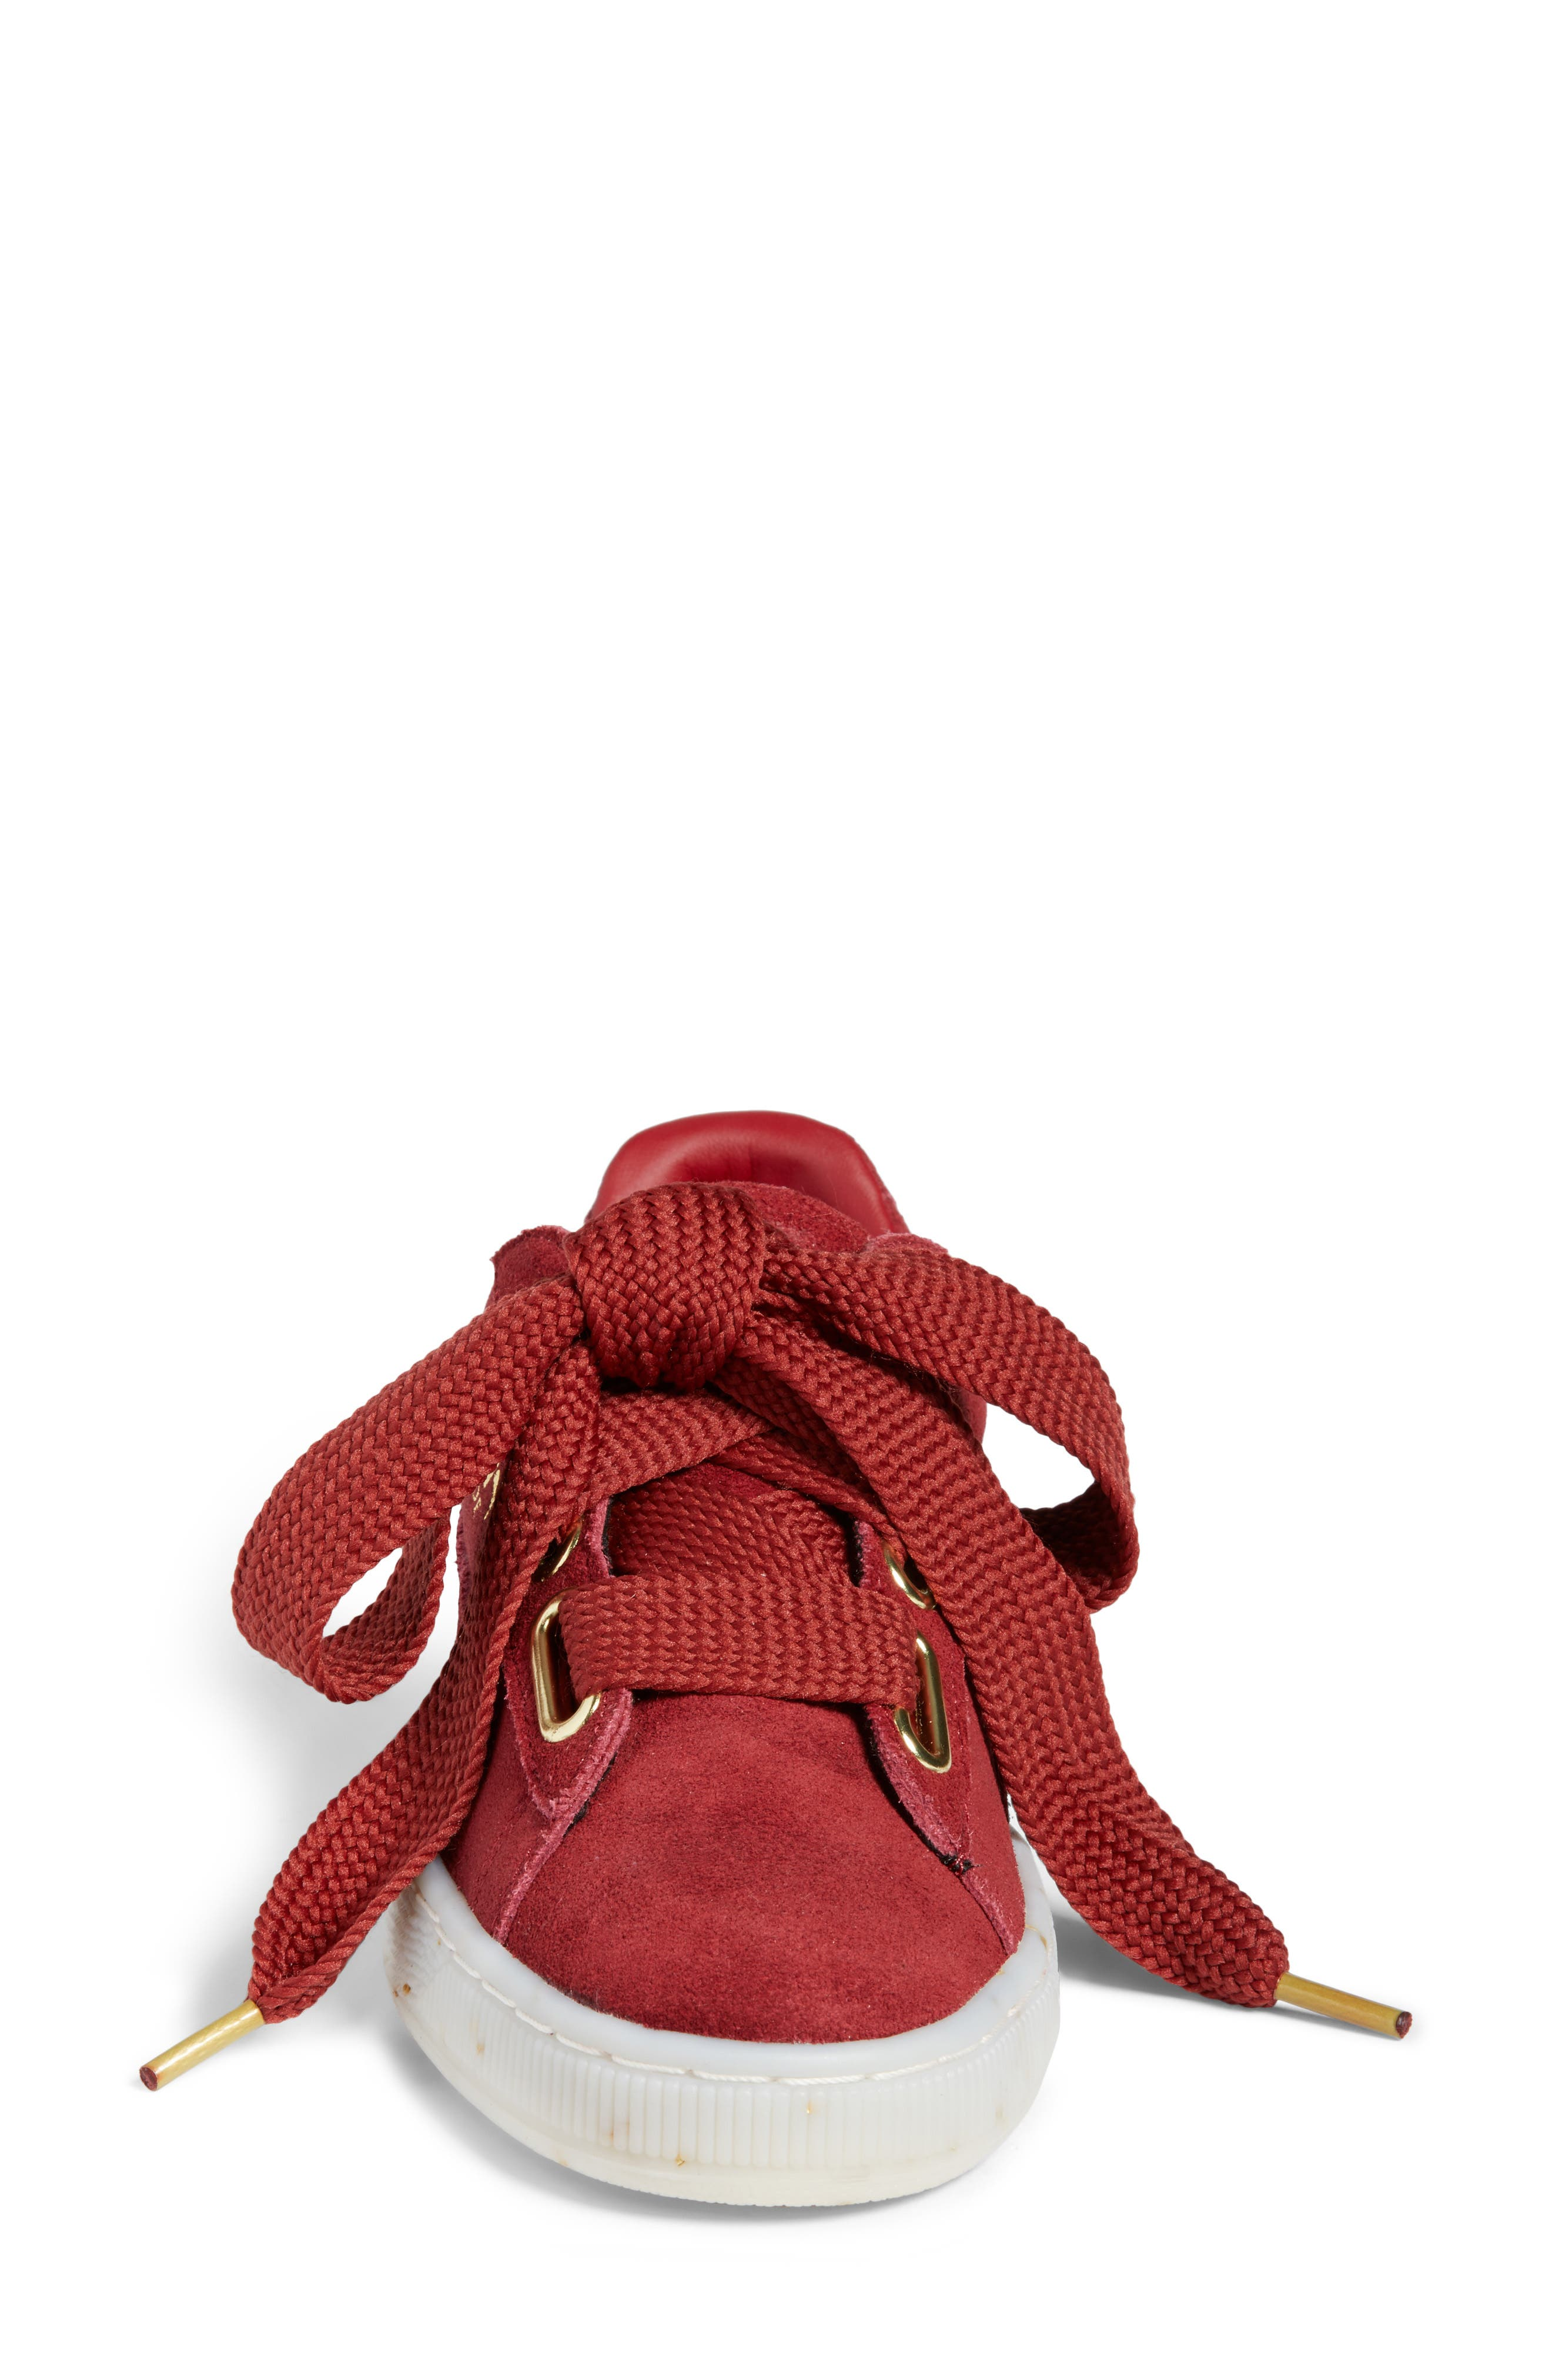 Suede - Heart Sneaker,                             Alternate thumbnail 4, color,                             Red Dahlia/ Red Dahlia